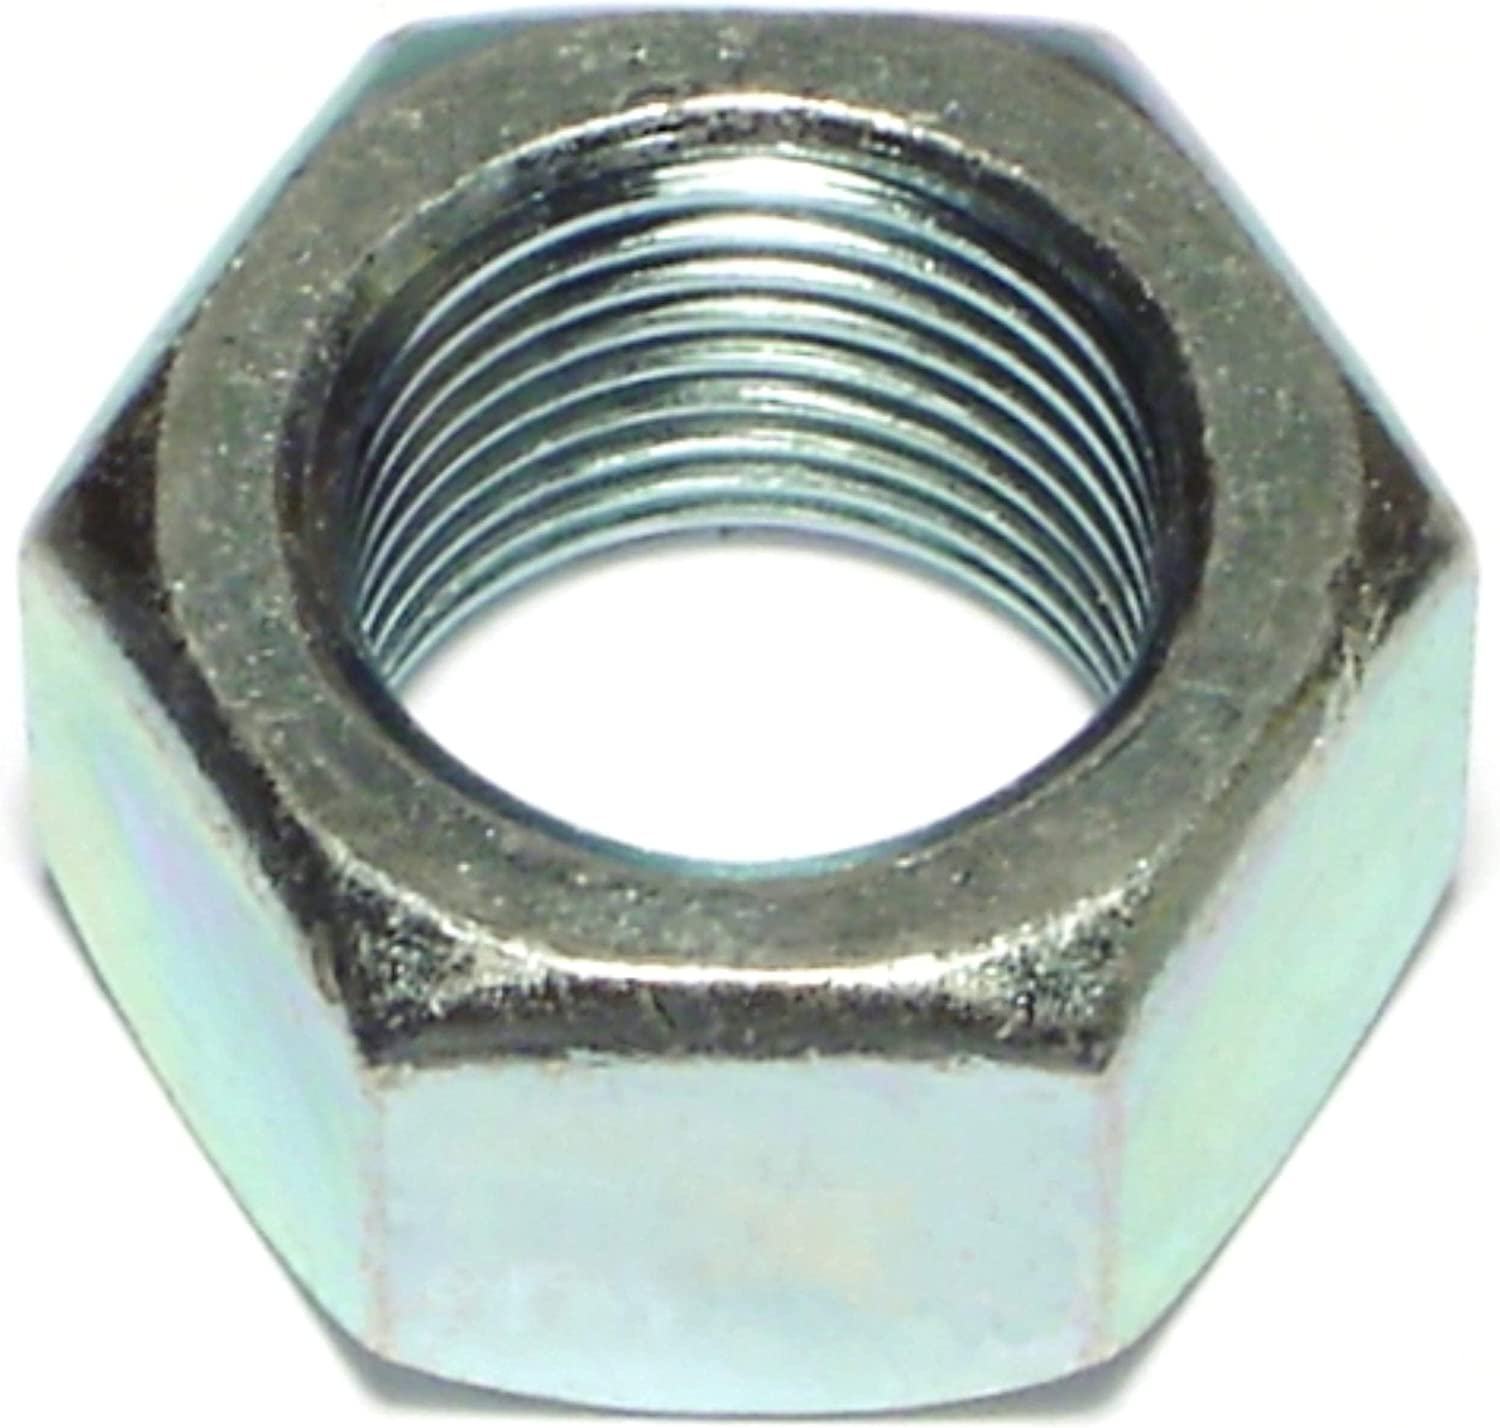 Hard-to-Find Fastener NEW 014973242183 Fine Finished Hex 4-1 3 Nuts Outlet sale feature